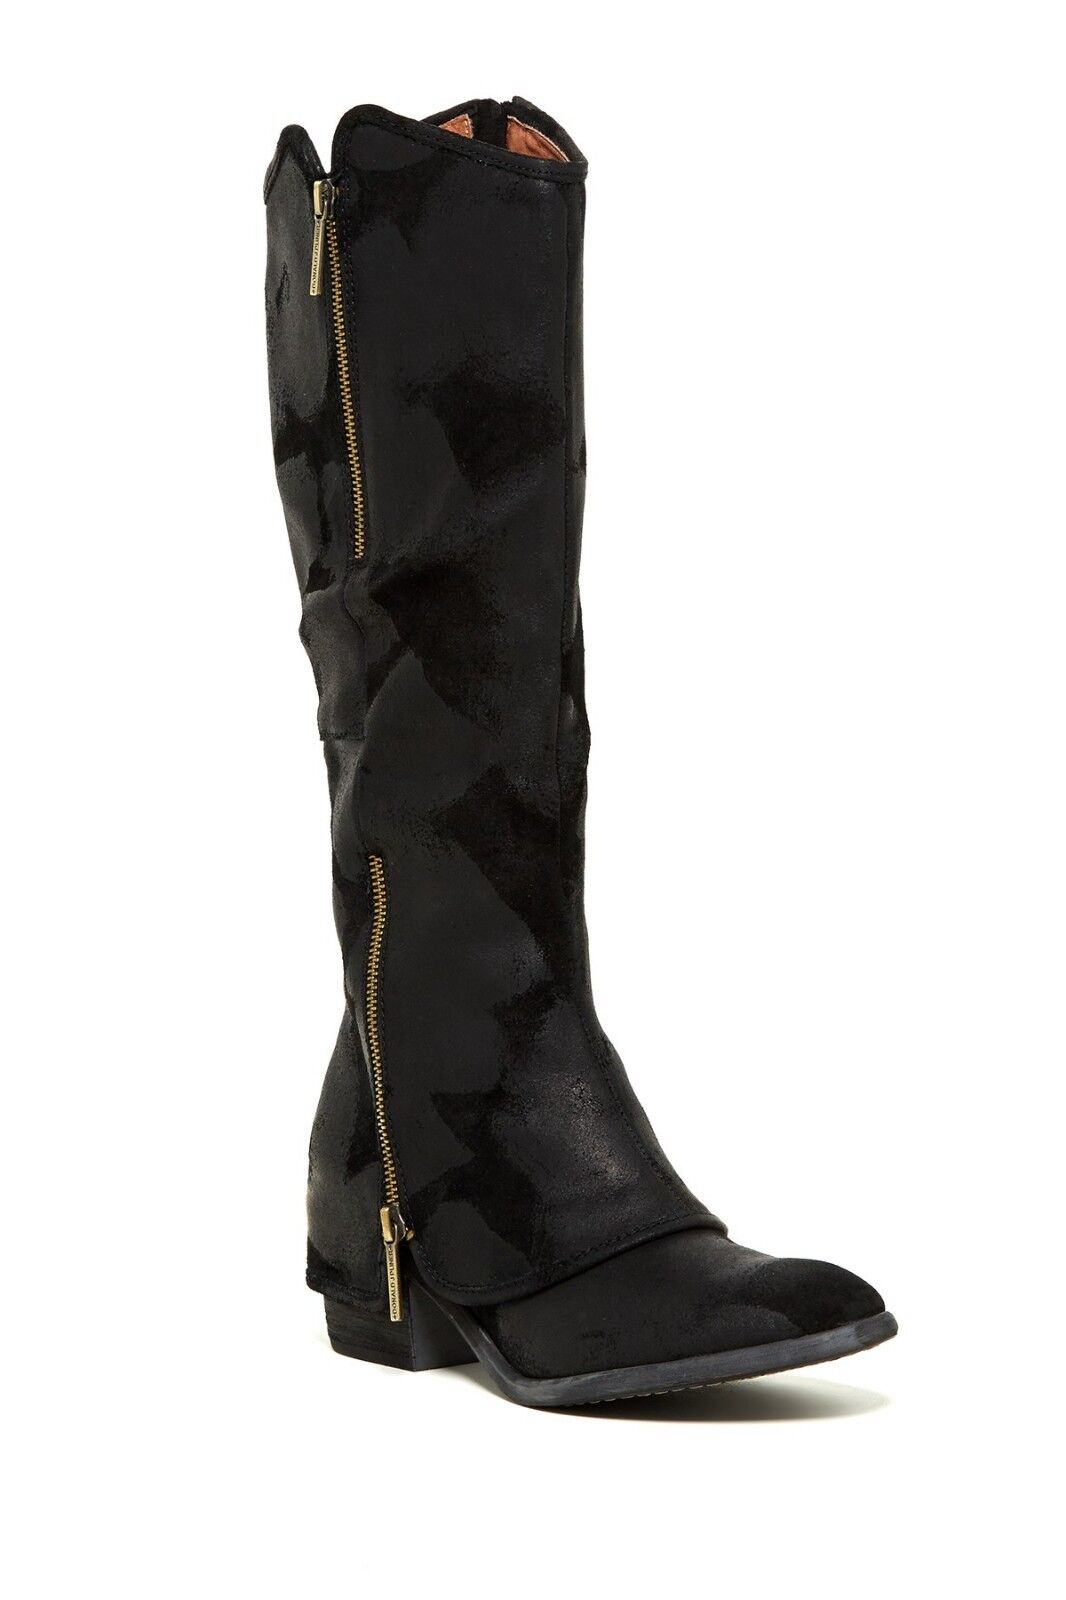 NEW Donald J Pliner Devi Antique nero Suede Tall avvio, donna Dimensione 5,  398